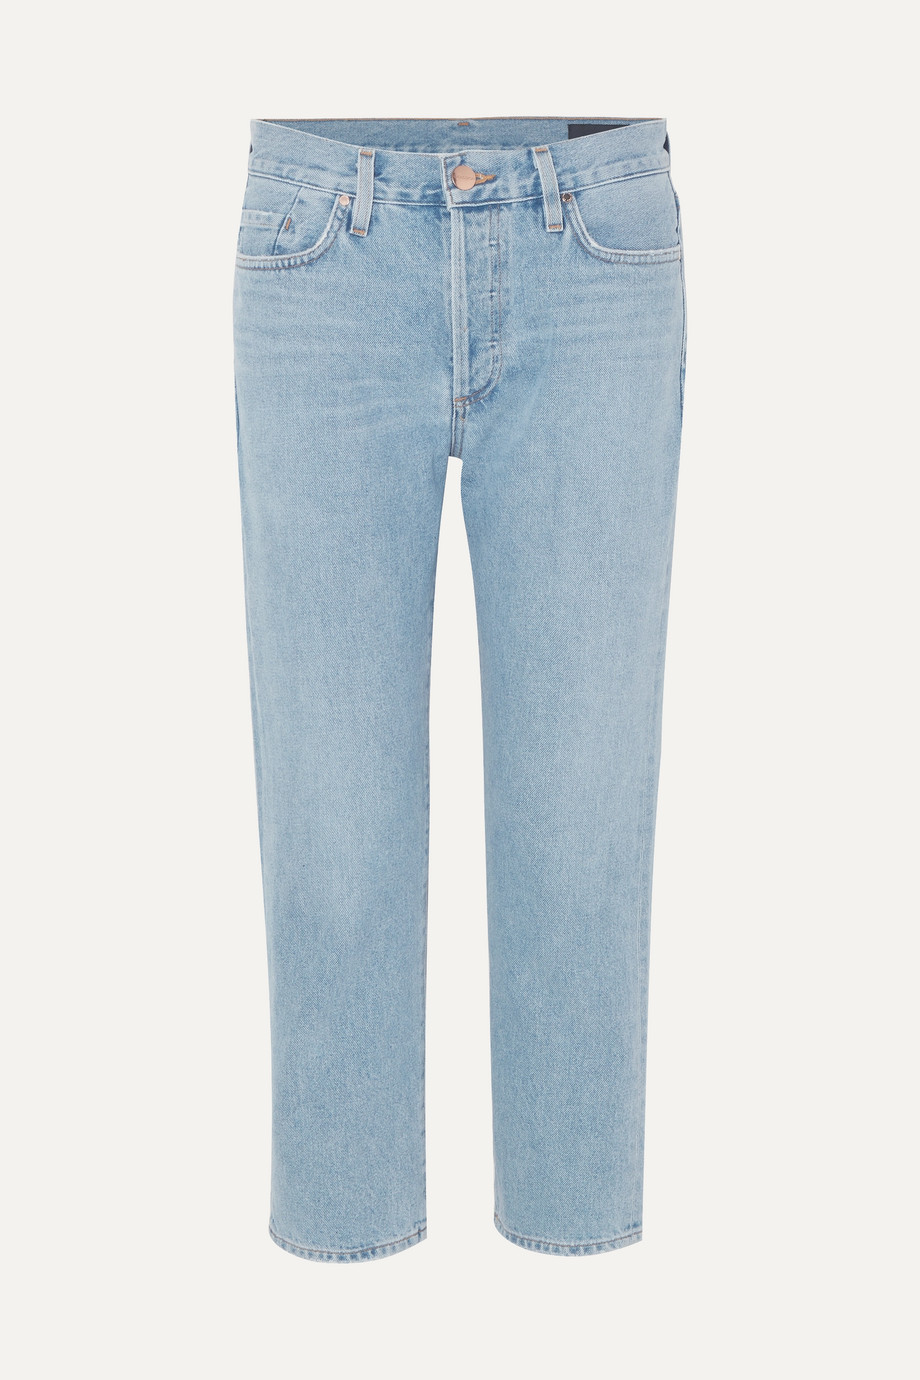 GOLDSIGN The Low Slung mid-rise jeans